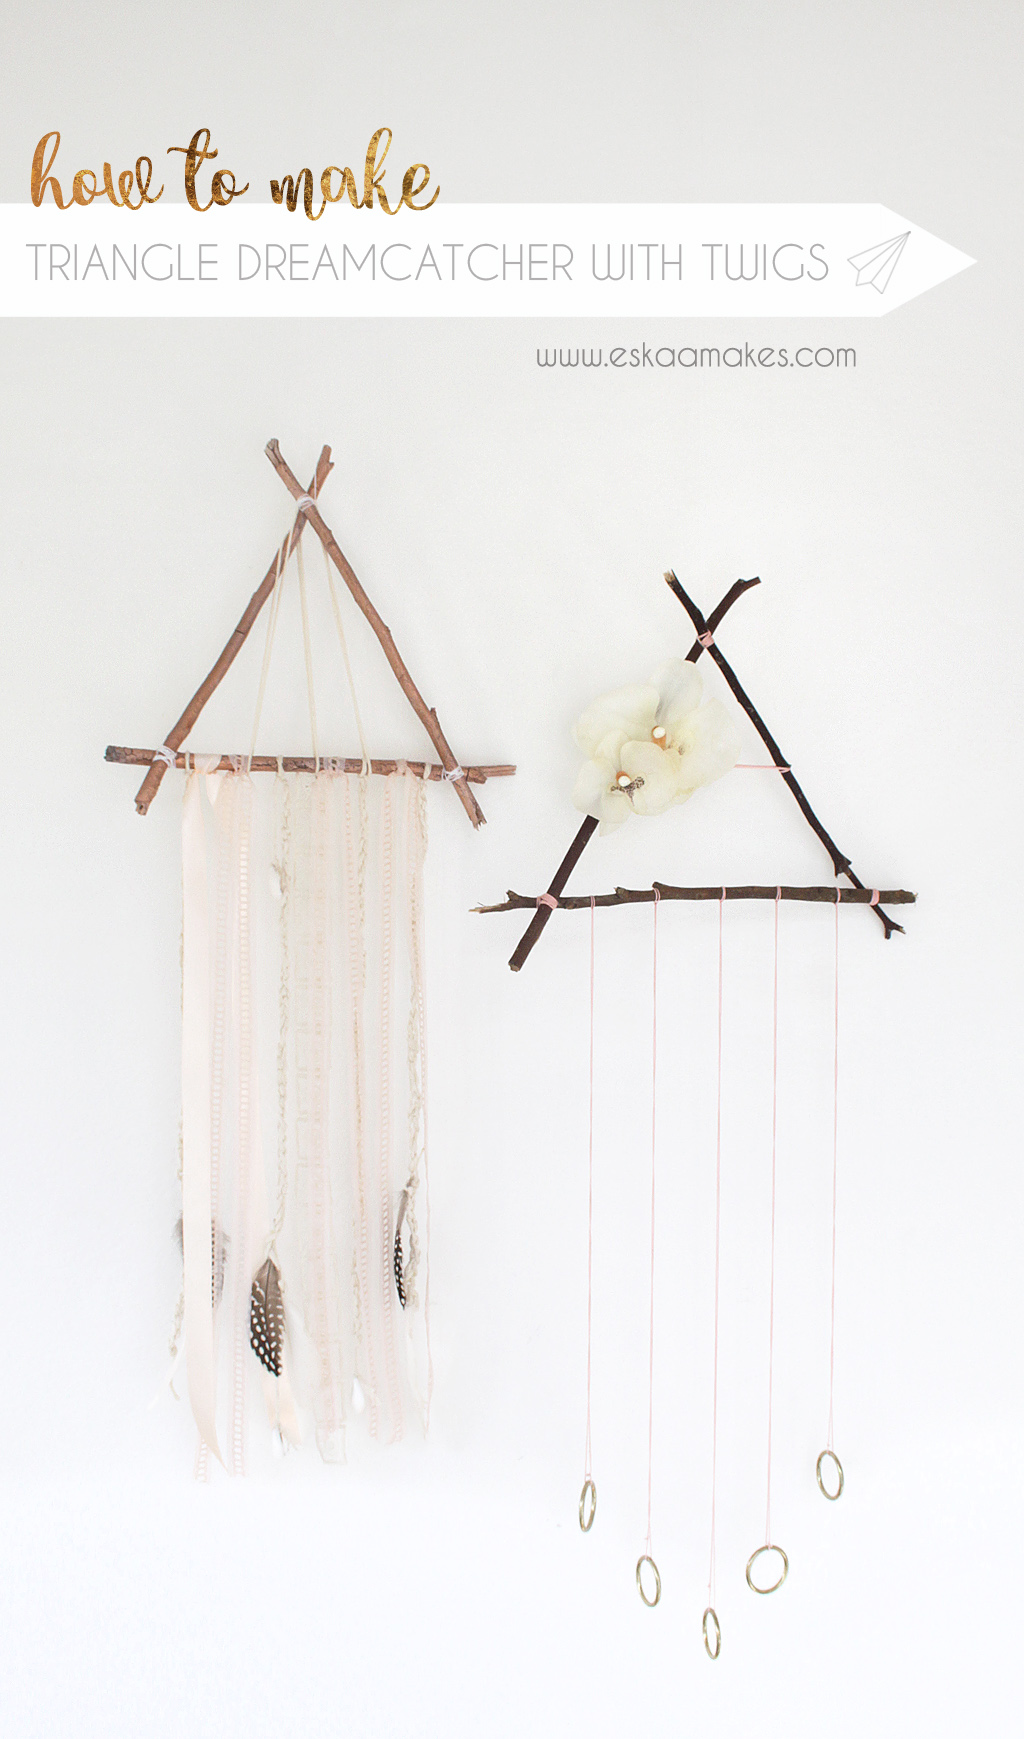 diy triangle dreamcatcher with twigs